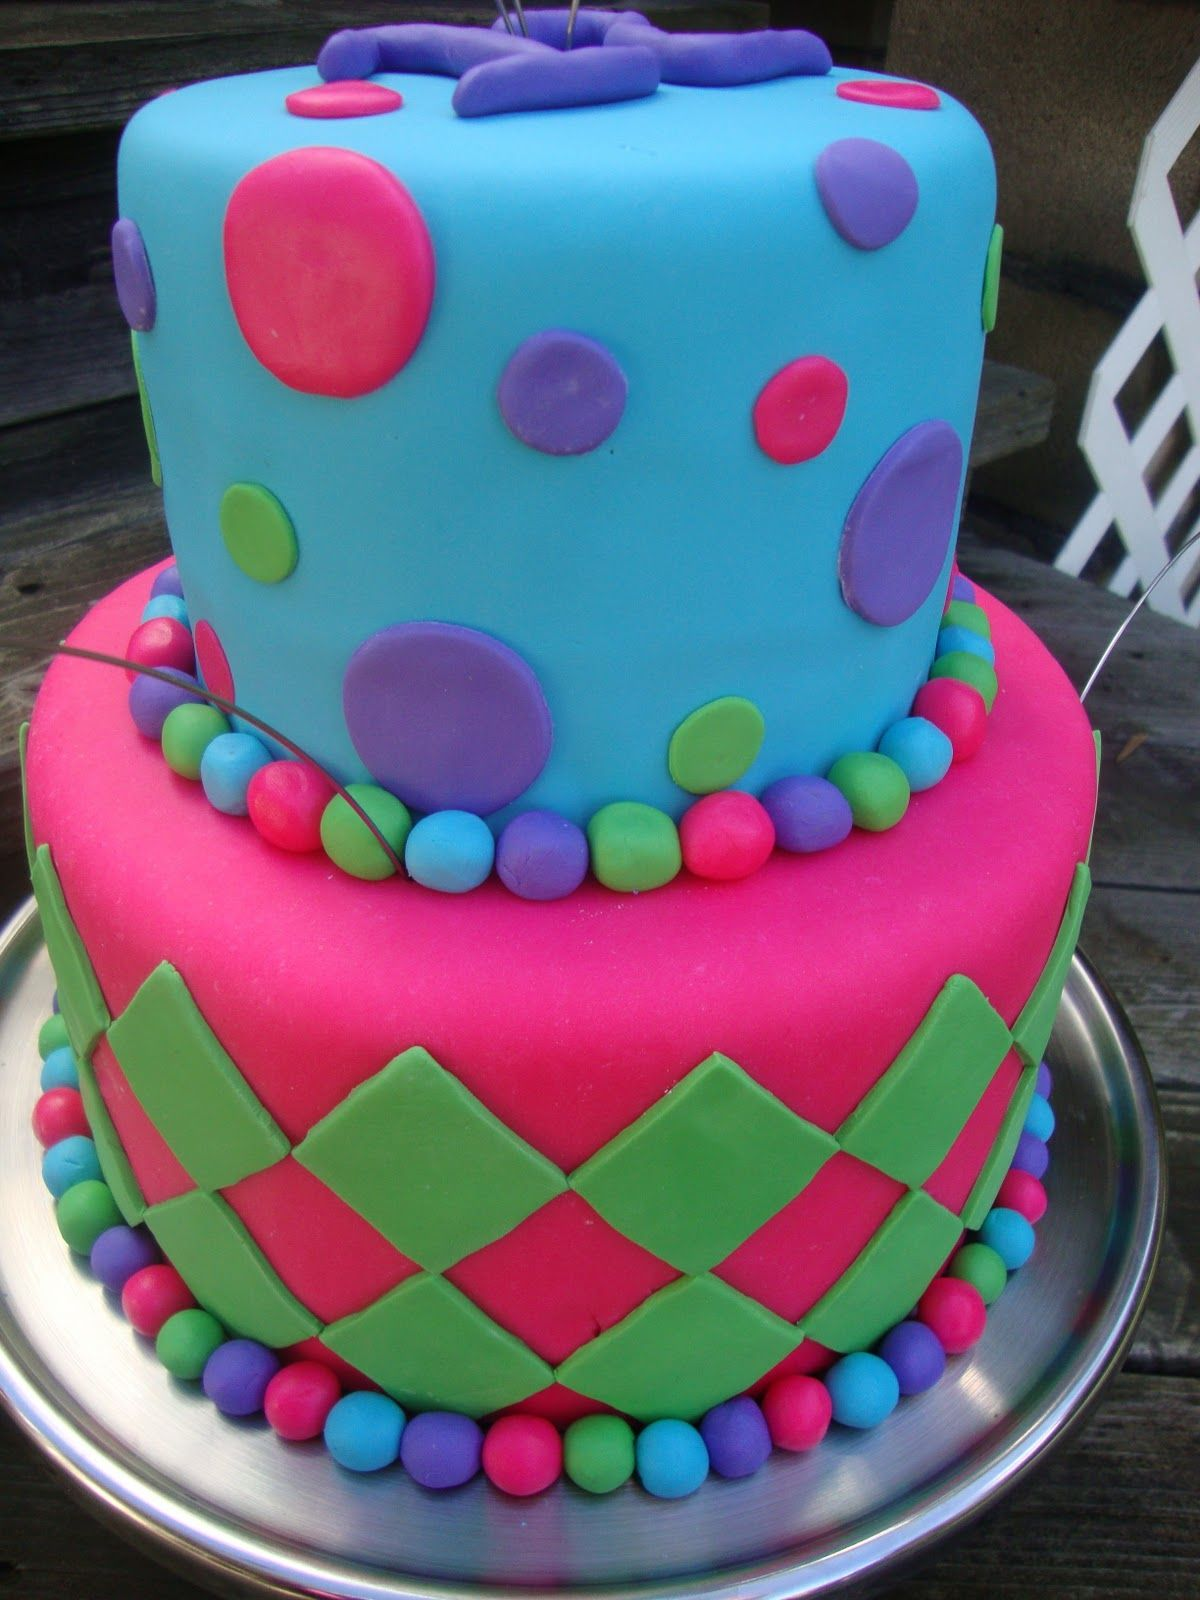 Cool Birthday Cake Made This Cake For A 12 Year Old Girls Birthday